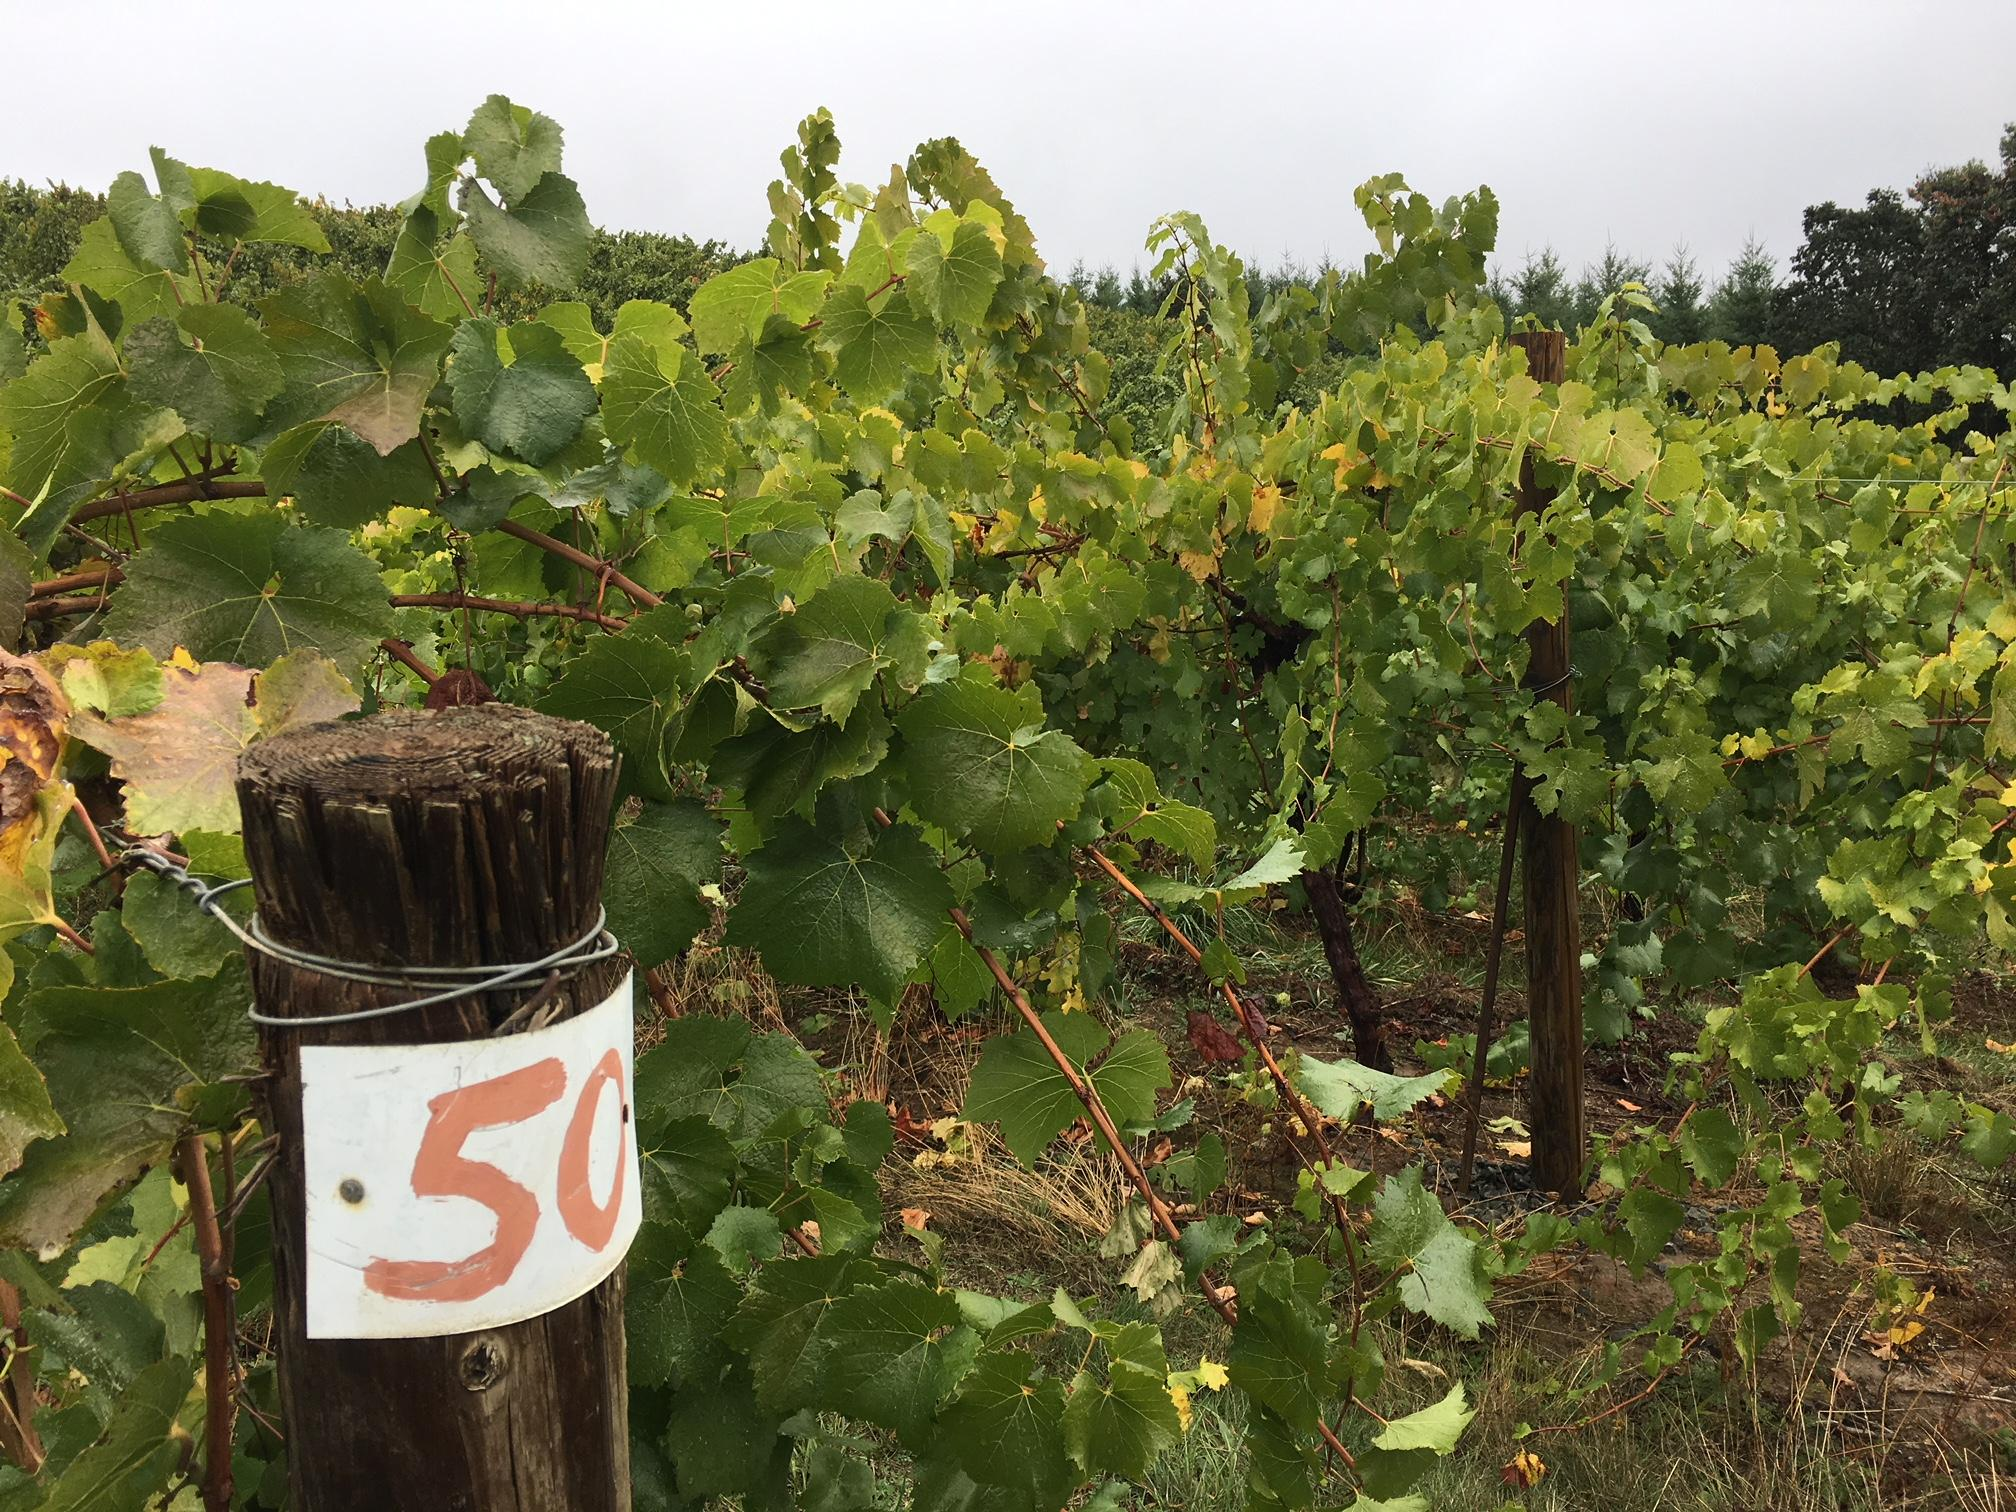 "Even if a winery escapes destruction, the ""smoke taint"" will be concern for winemakers, Danuta Pfeiffer said. ""The grapes are going to absorb all that smoke, and it's going to affect the vintage if the grapes are still hanging,"" she said. That's not just an issue right now for California. Pfeiffer said Oregon winemakers in areas impacted by this past summer's wildfires have smoke taint on their minds. (SBG)"